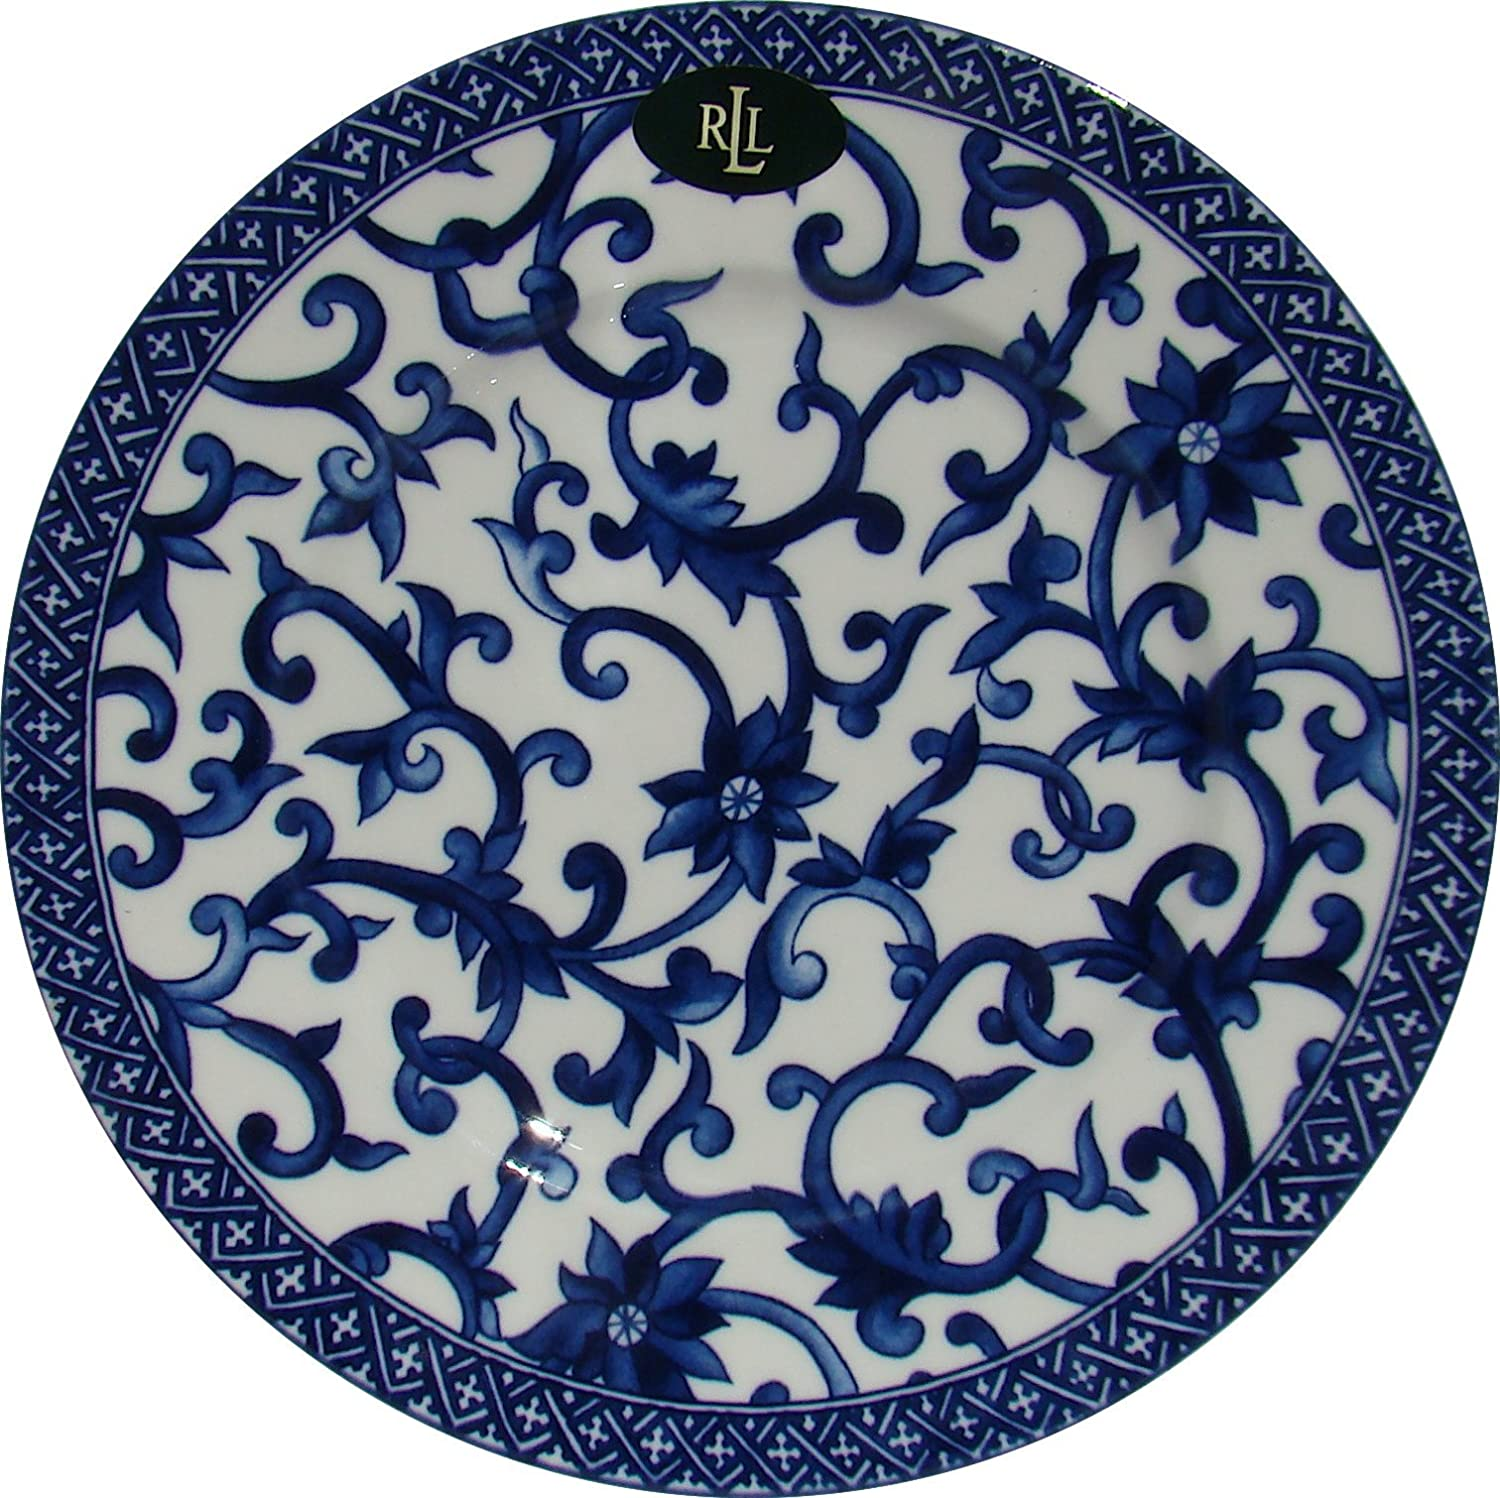 Amazon.com | Ralph Lauren Mandarin-Blue Salad Plate Fine China Dinnerware Ralph Lauren Mandarin Blue White Porcelain Salad Plates  sc 1 st  Amazon.com & Amazon.com | Ralph Lauren Mandarin-Blue Salad Plate Fine China ...